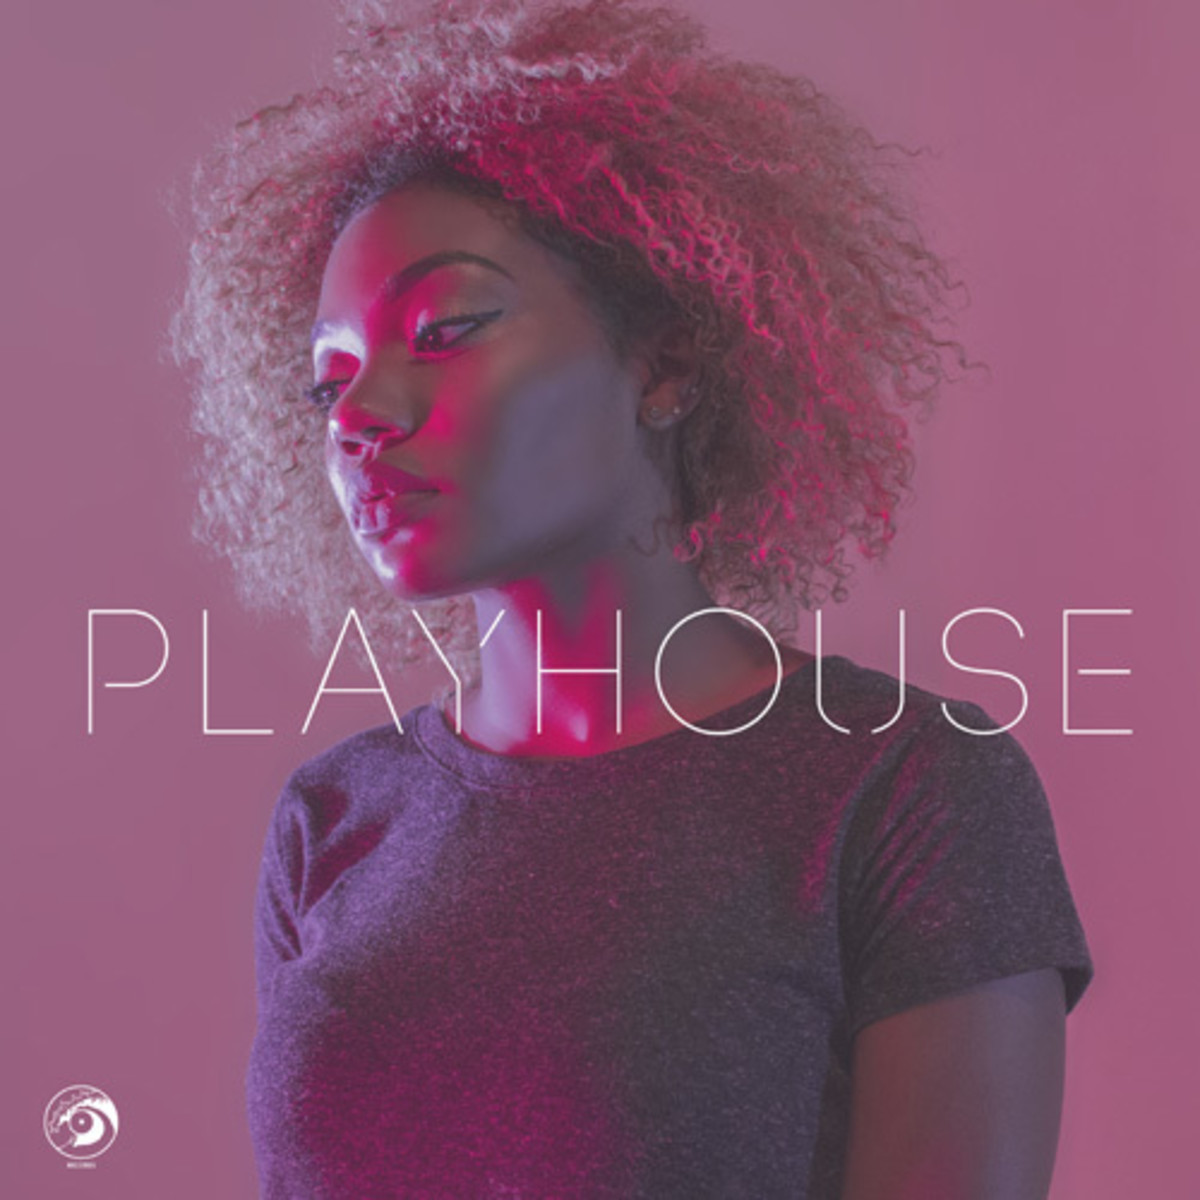 alexis-roberts-play-house2.jpg